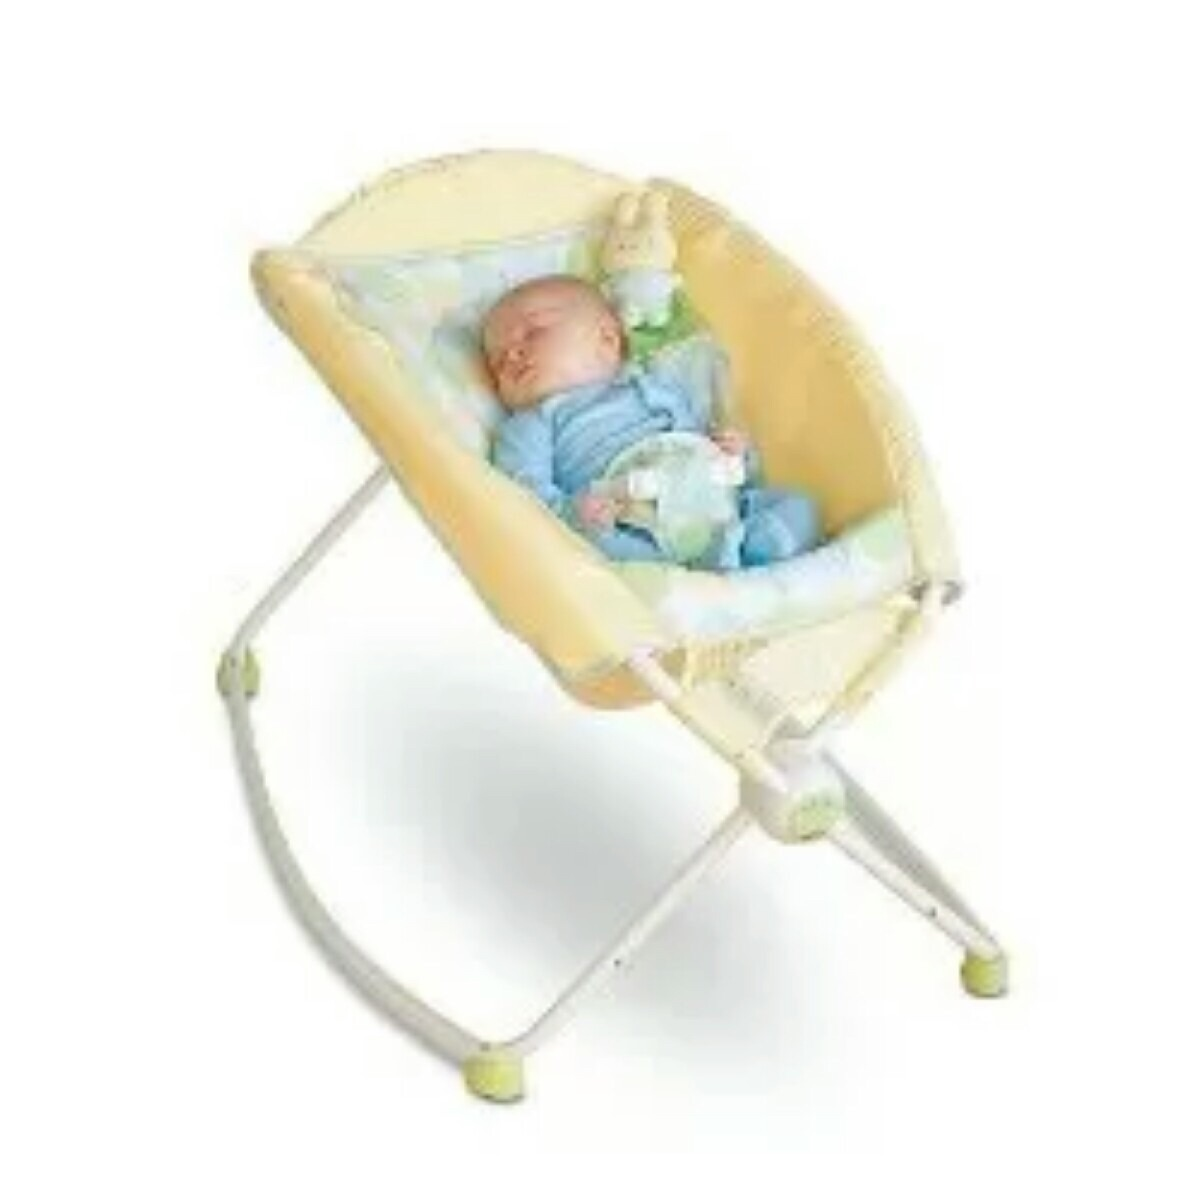 086bc7b1d Cuna Plegable Fisher Price Mecedora - $ 19.990 en Mercado Libre